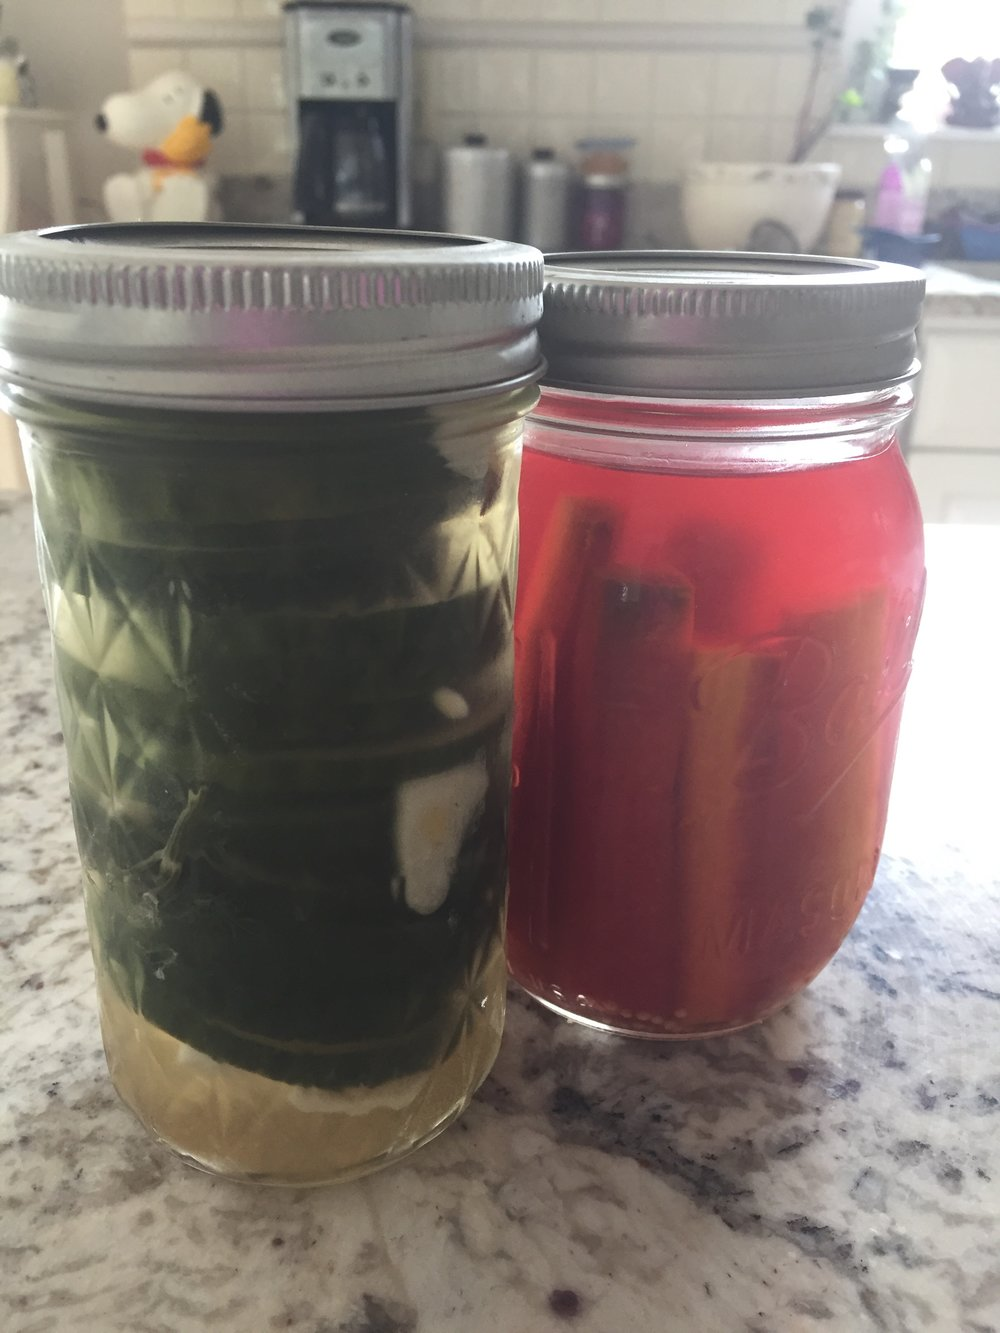 Cucumbers with garlic, dill and mustard seed; carrots with thyme and ginger. The brine turned pinkish red thanks to the interaction of purple carrots with the vinegar.